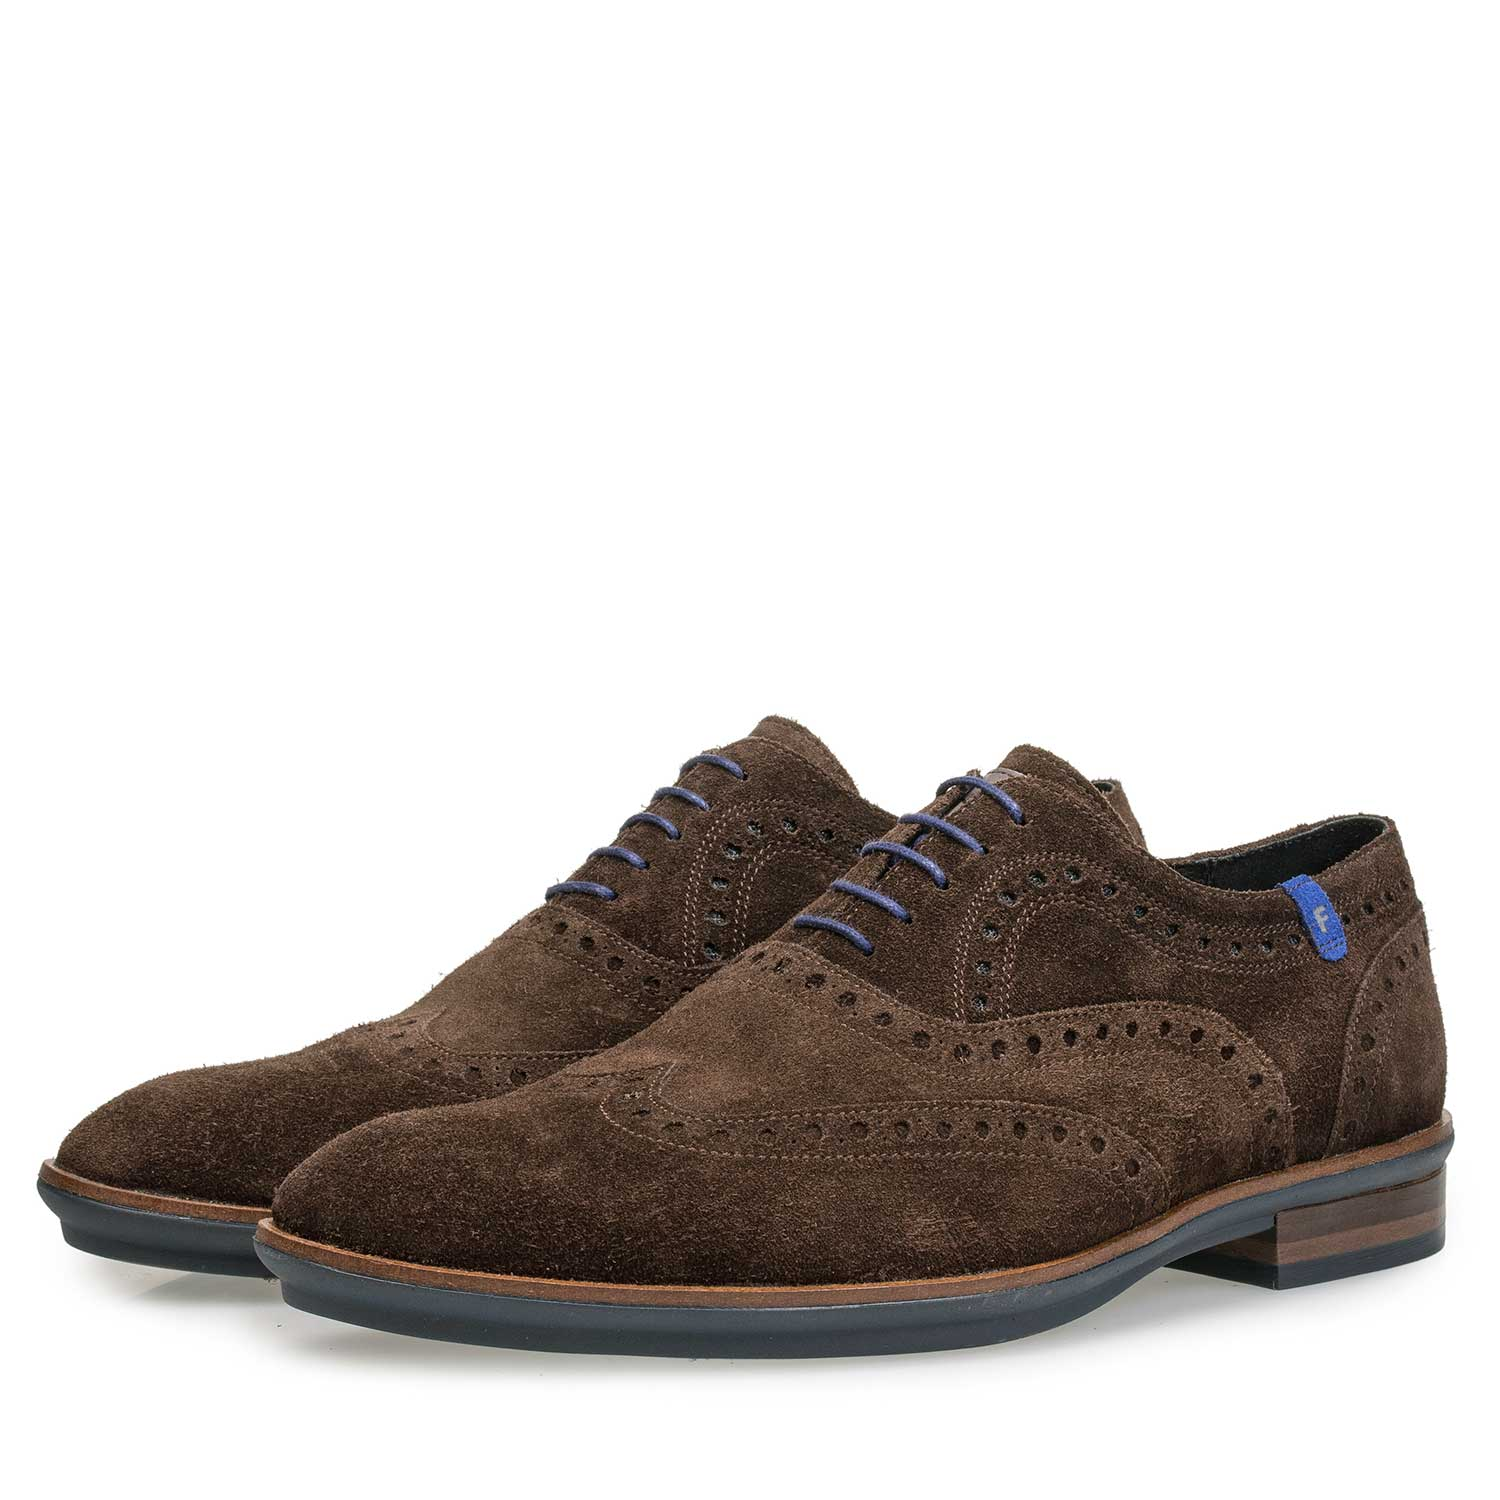 19048/05 - Brown brogue suede leather lace shoe